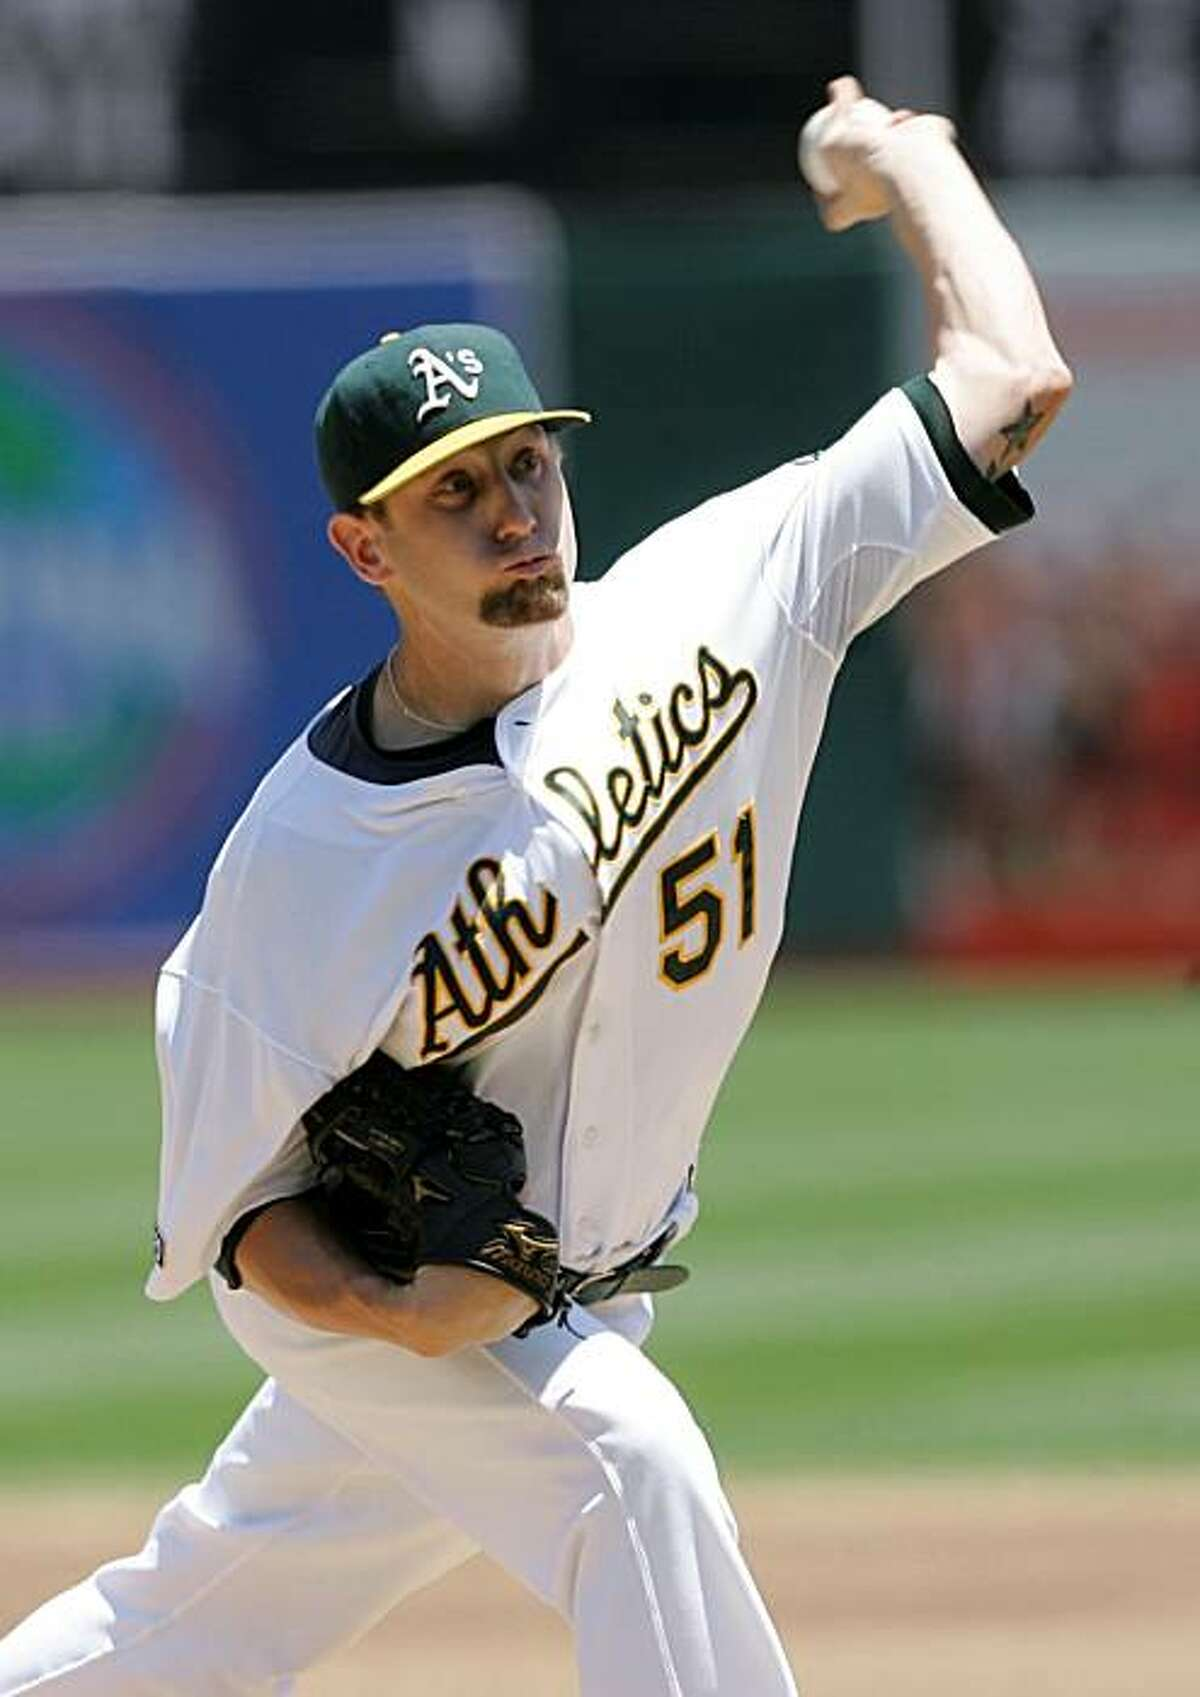 Oakland Athletics' Dallas Braden pitches against the Detroit Tigers in the third inning of a baseball game Wednesday, July 1, 2009, in Oakland, Calif. (AP Photo/Jeff Chiu)